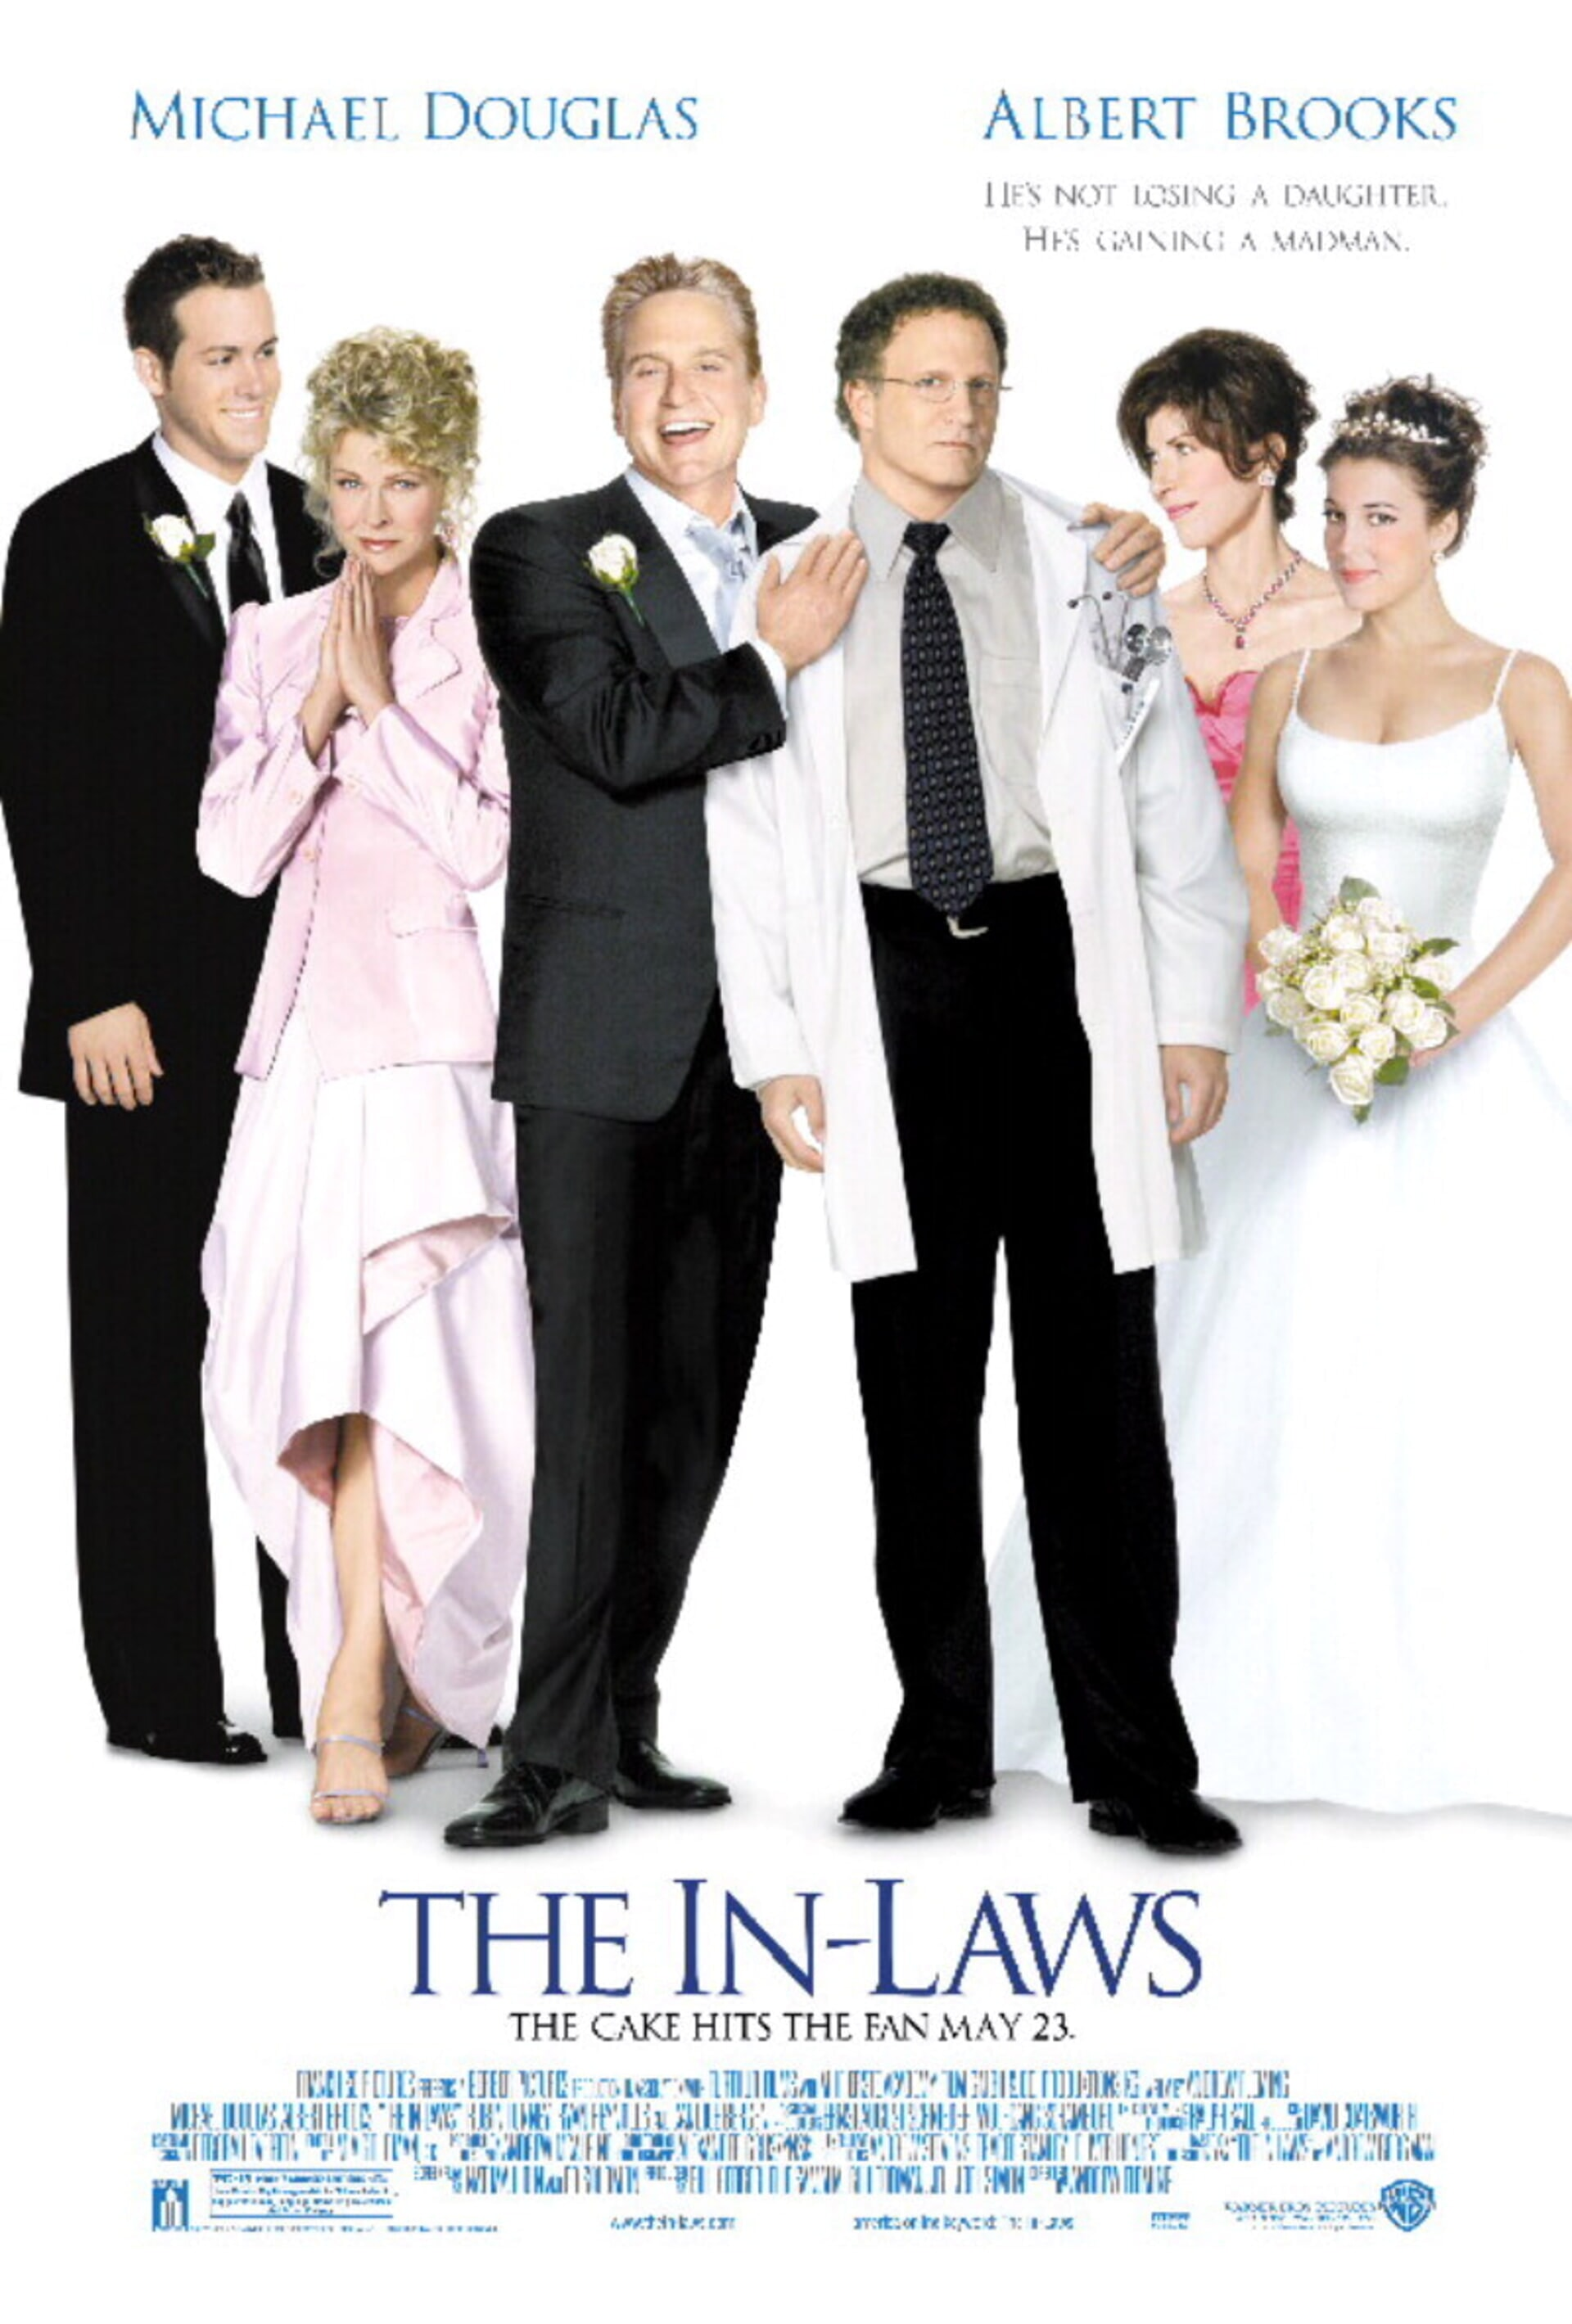 The in-laws (2003) - Poster 1